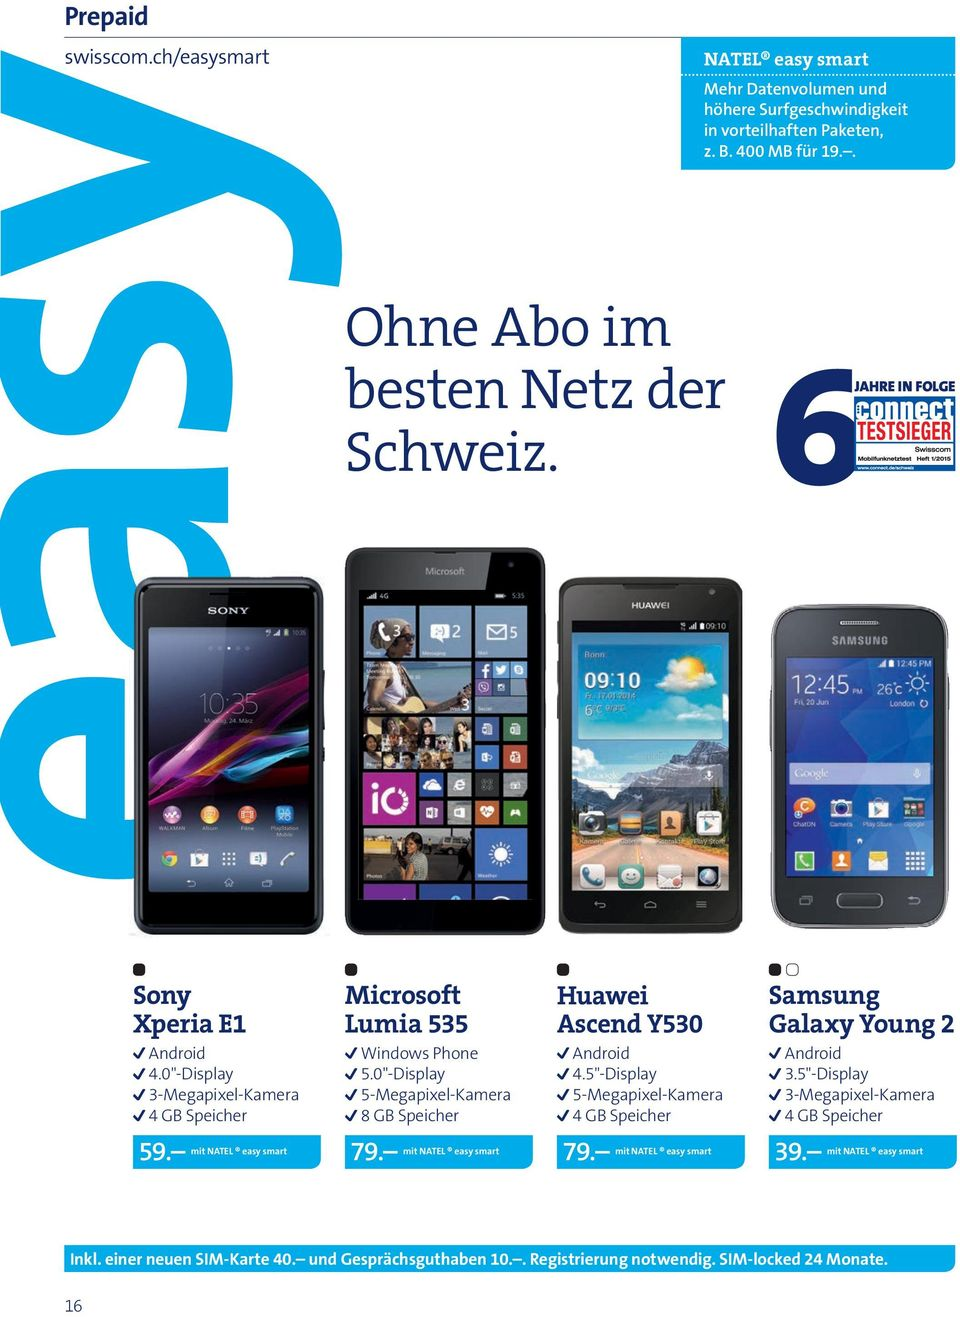 "0""-Display 5-Megapixel-Kamera 8 GB Speicher Huawei Ascend Y530 Android 4.5""-Display 5-Megapixel-Kamera 4 GB Speicher Samsung Galaxy Young 2 Android 3."